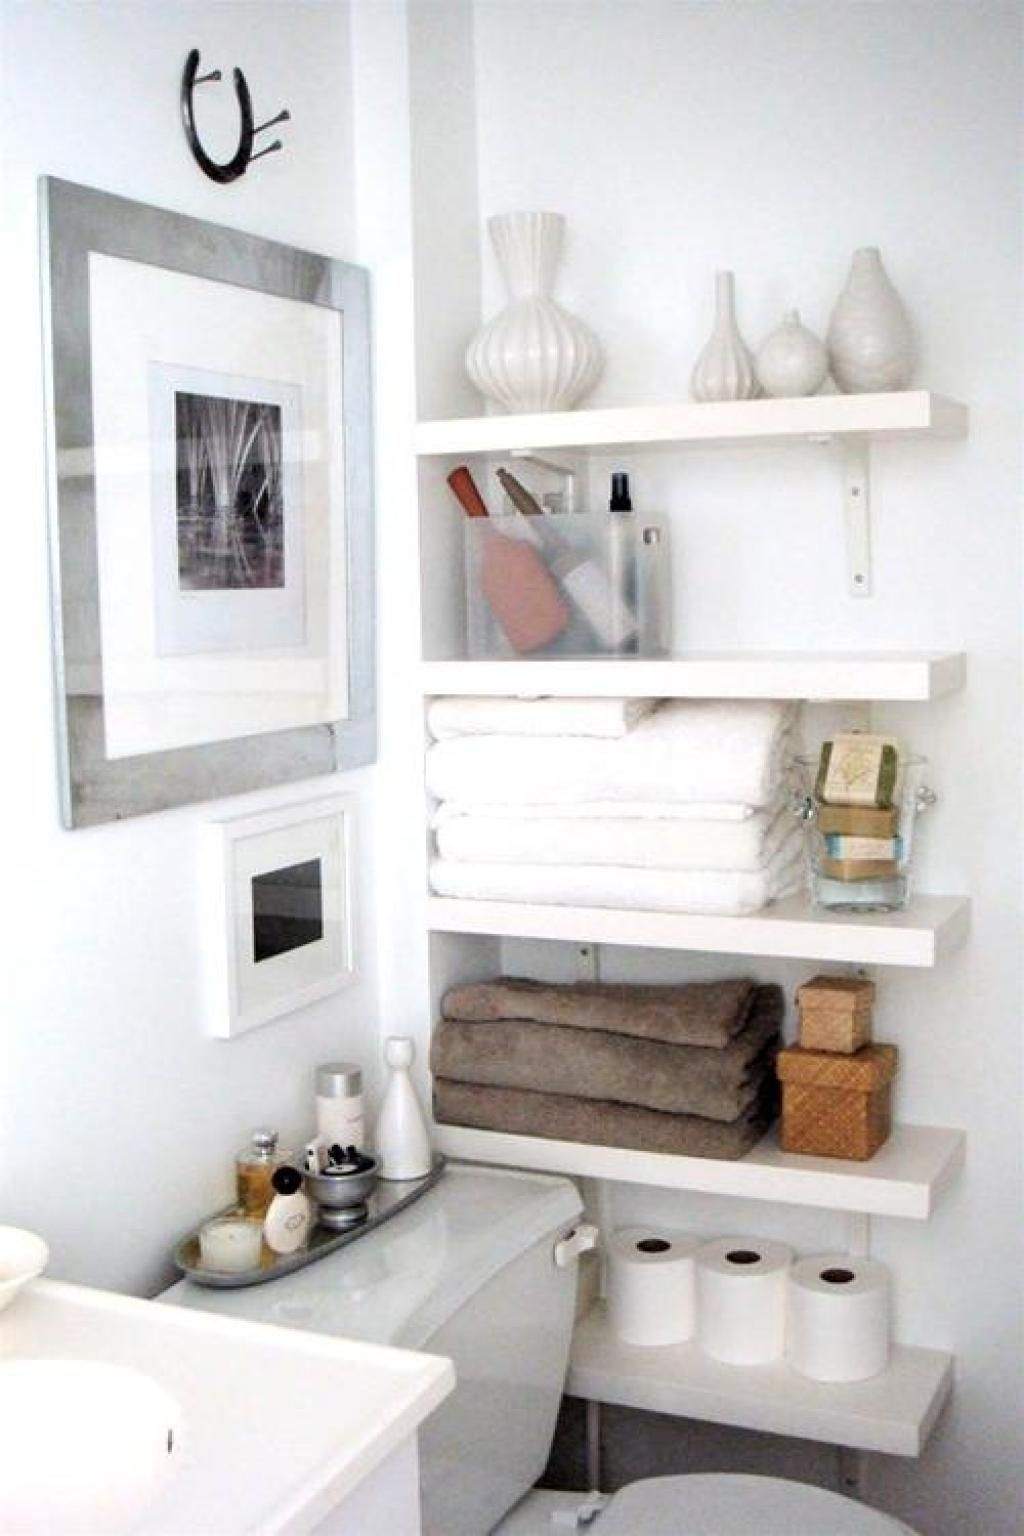 White Towel Shelved With White Interior Theme Design Also With ...